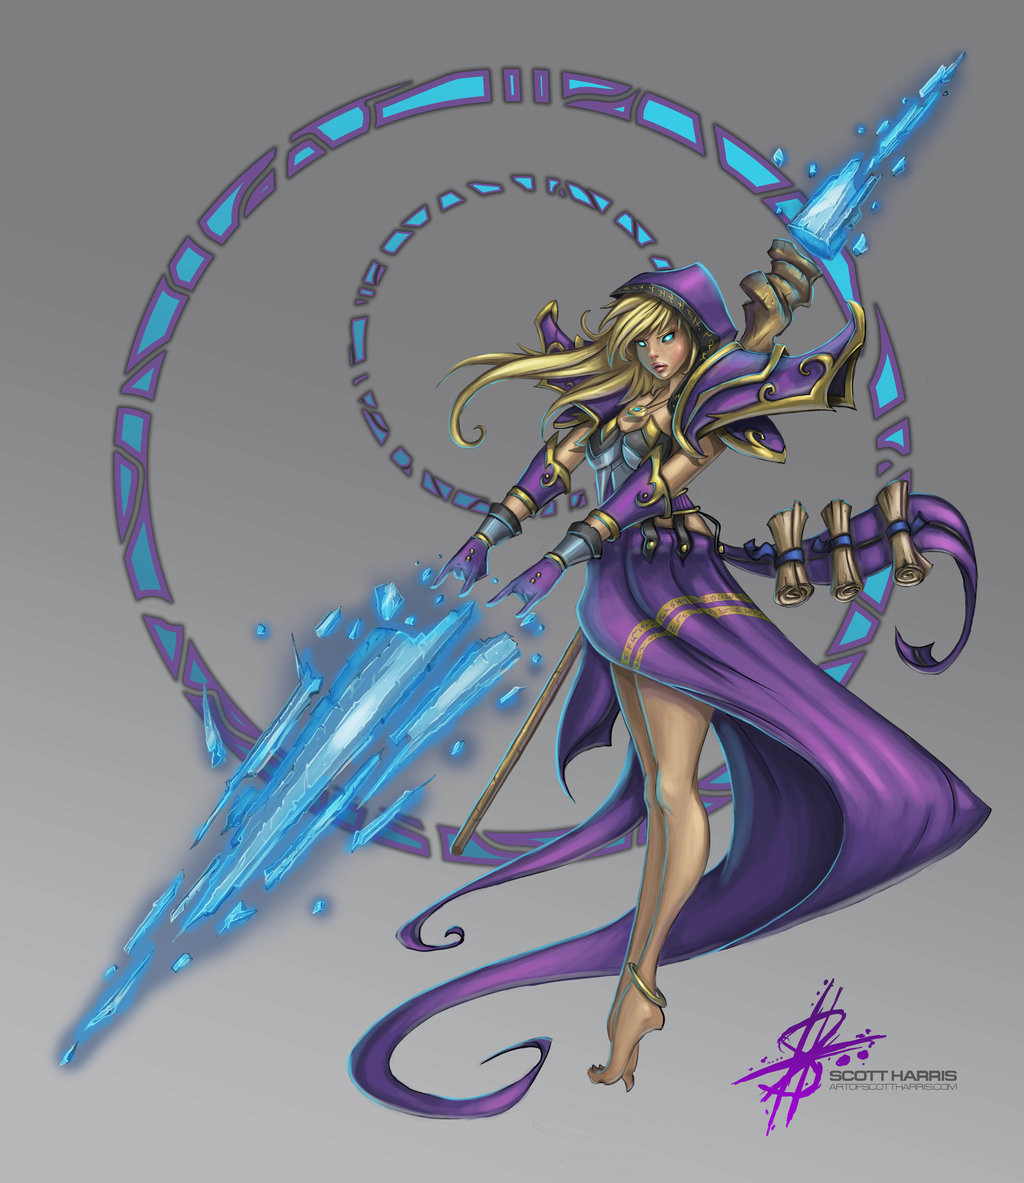 Scott harris dark jaina proudmoore by art of scott d90tx0d